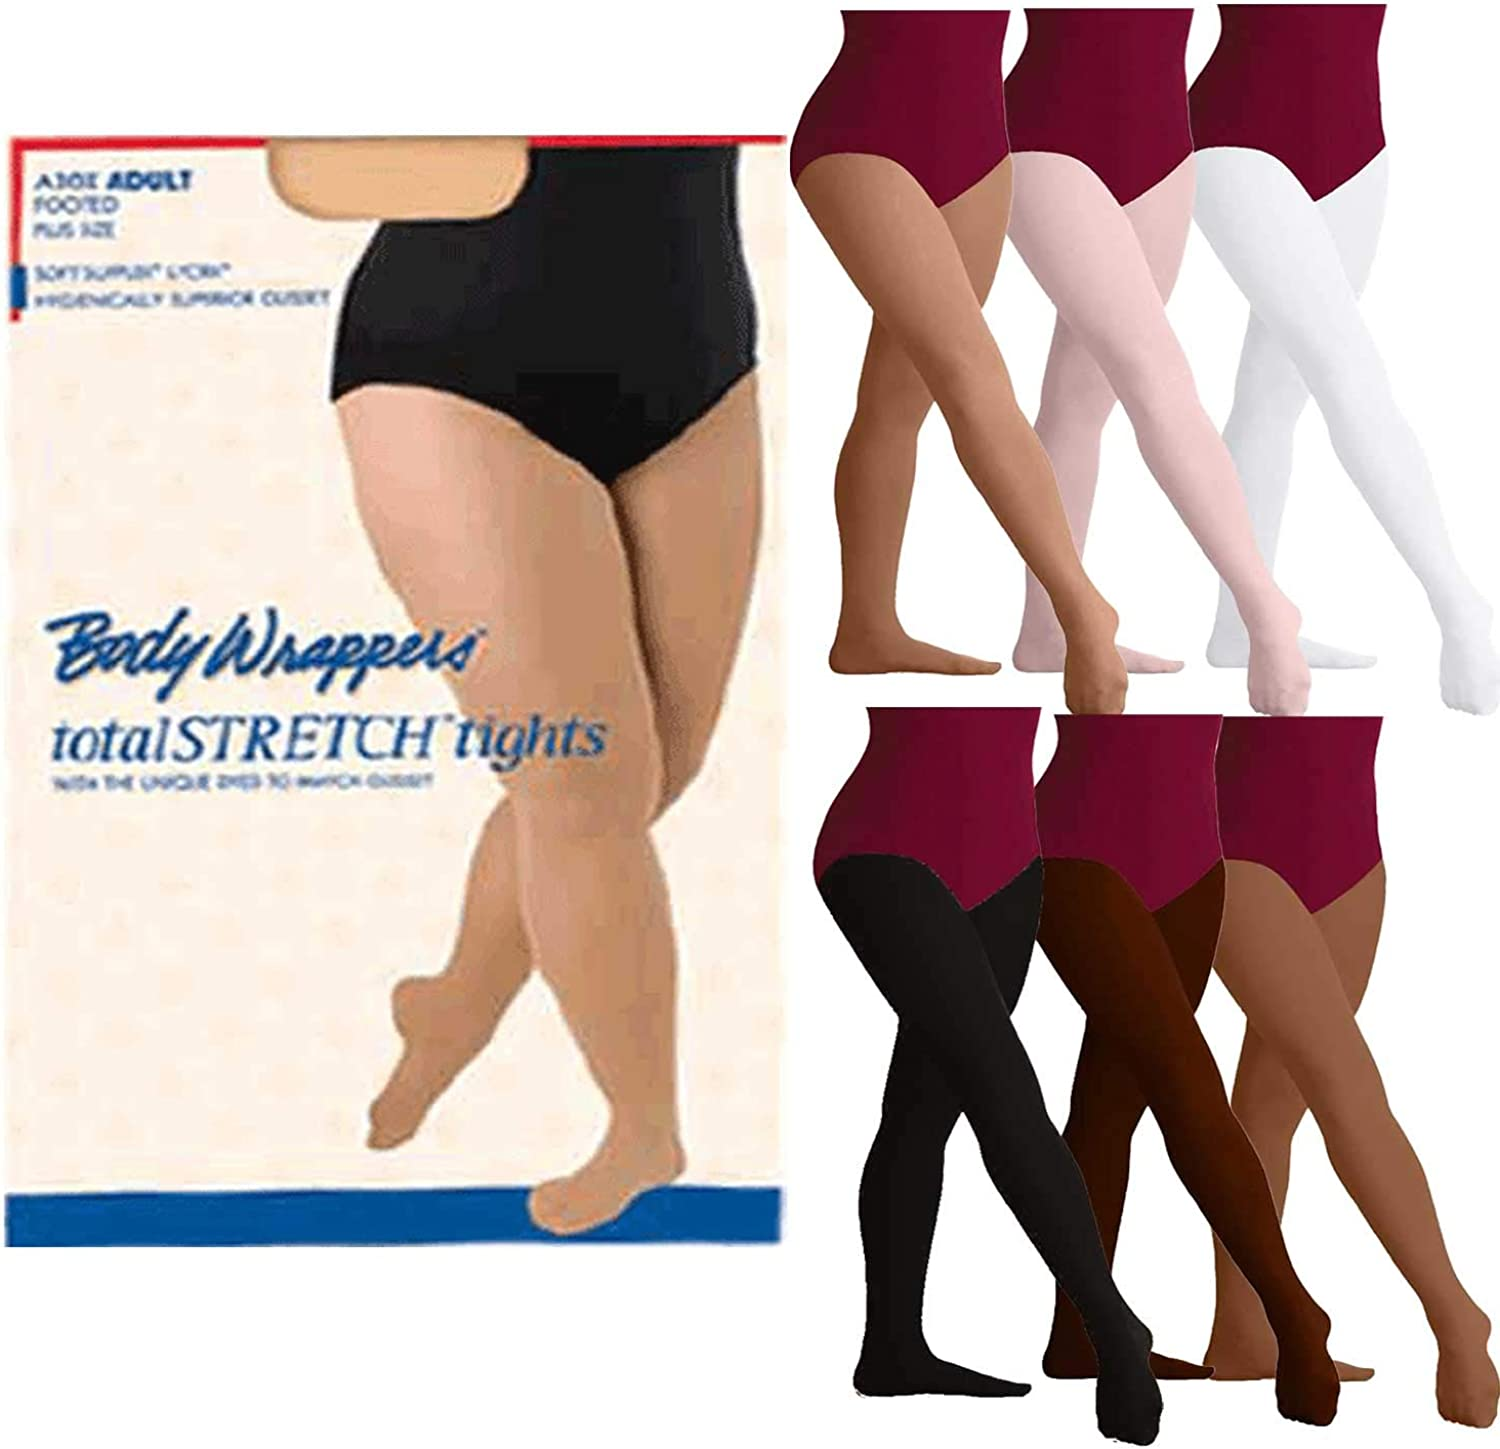 Body Wrappers A30X Women's Plus Size TotalSTRETCH Footed Tights